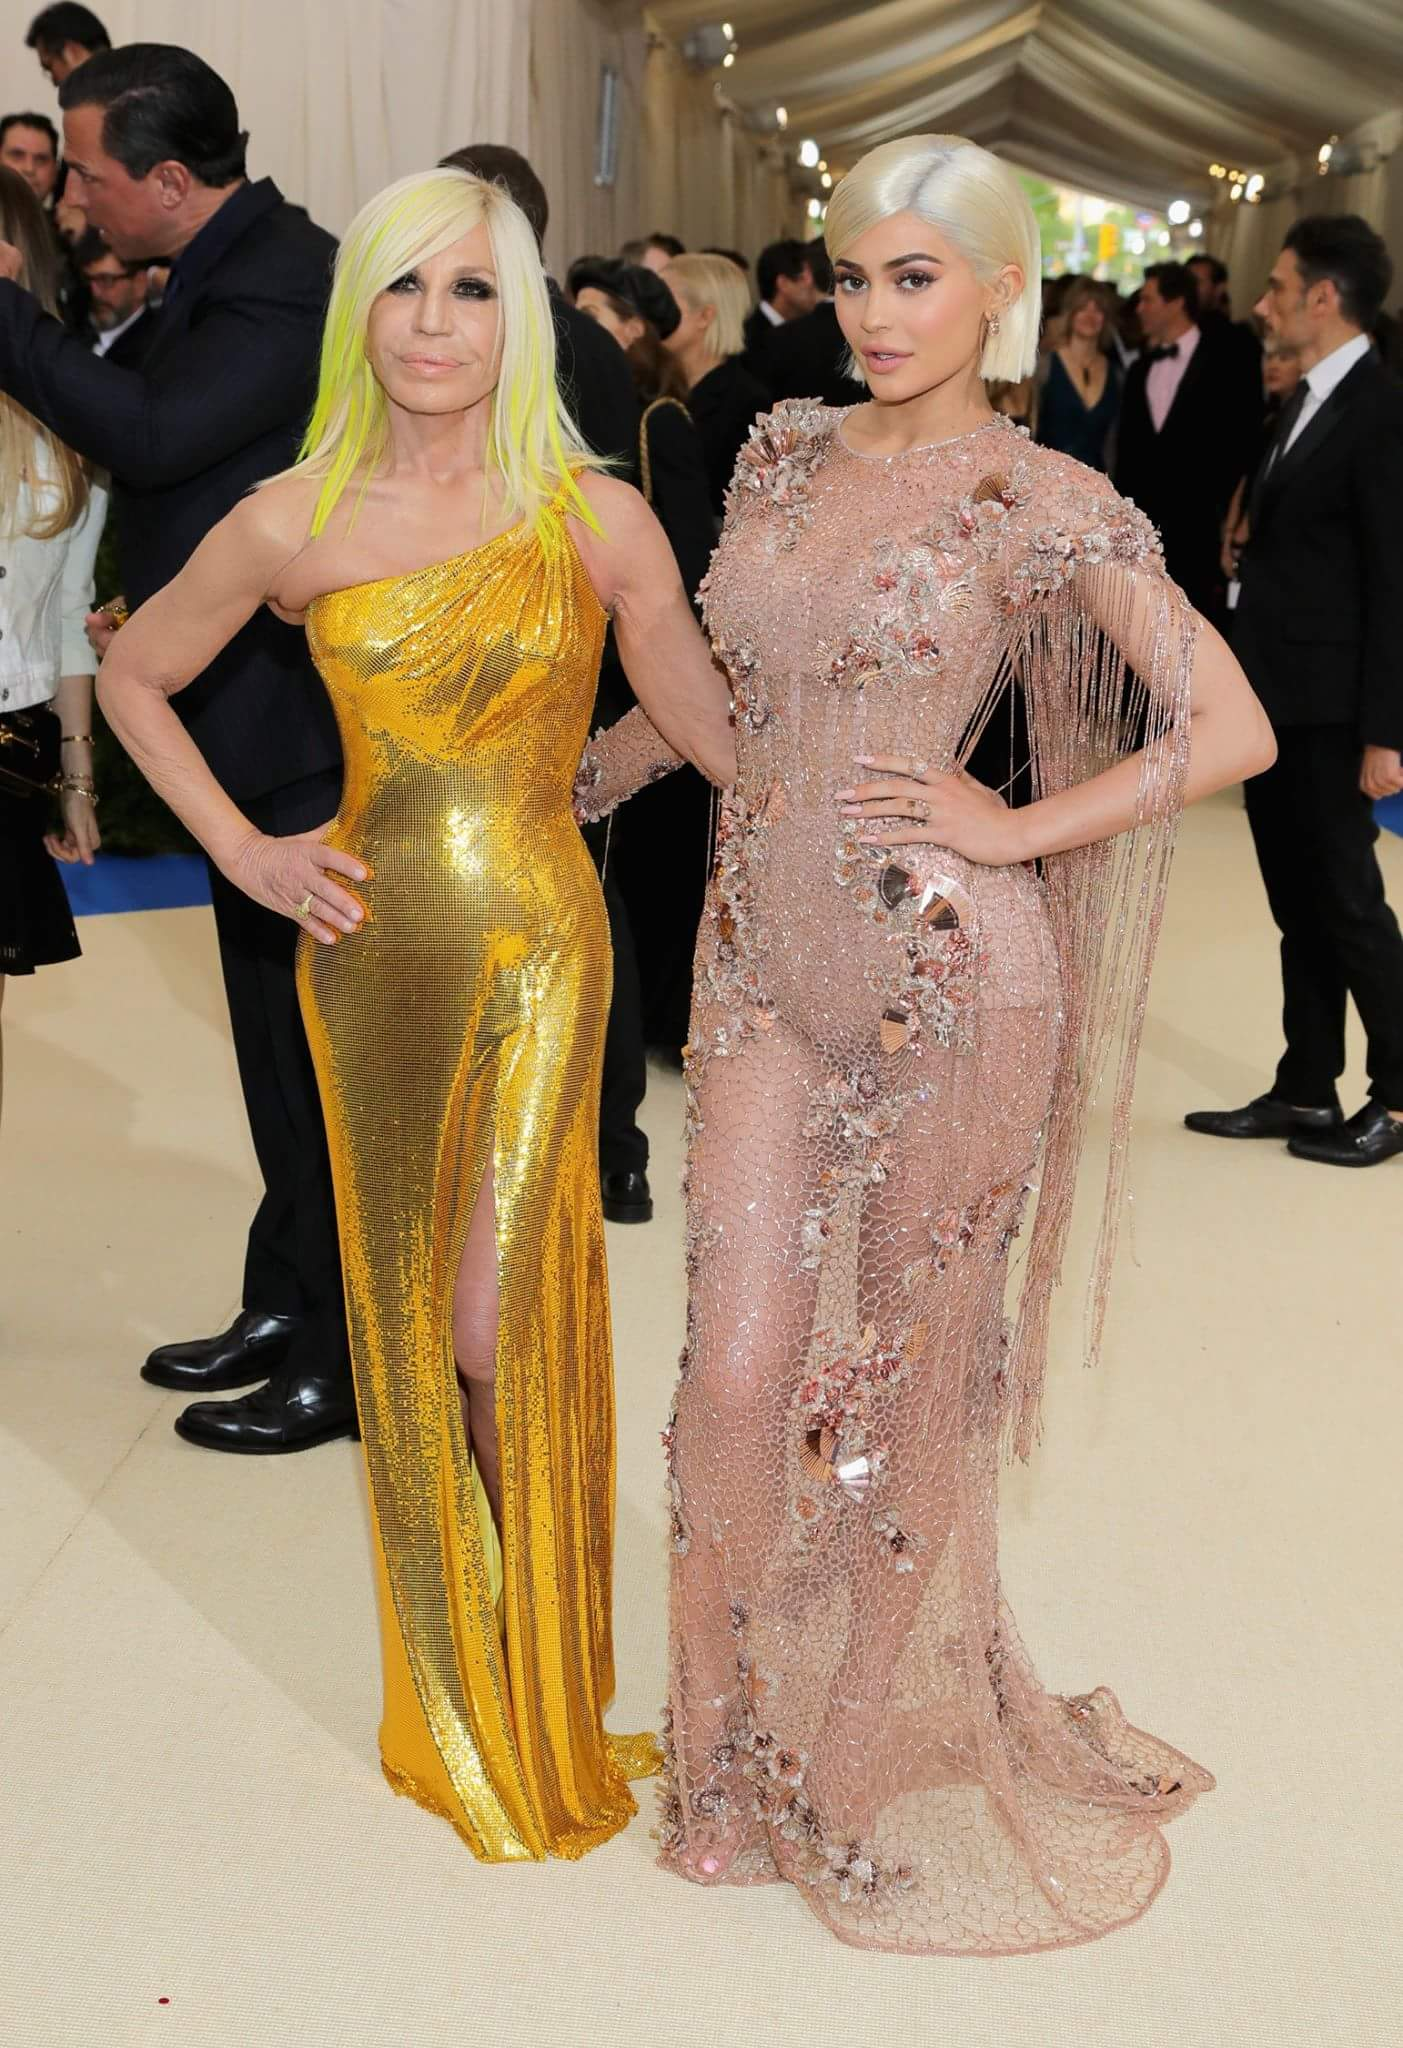 Donatella and Kylie